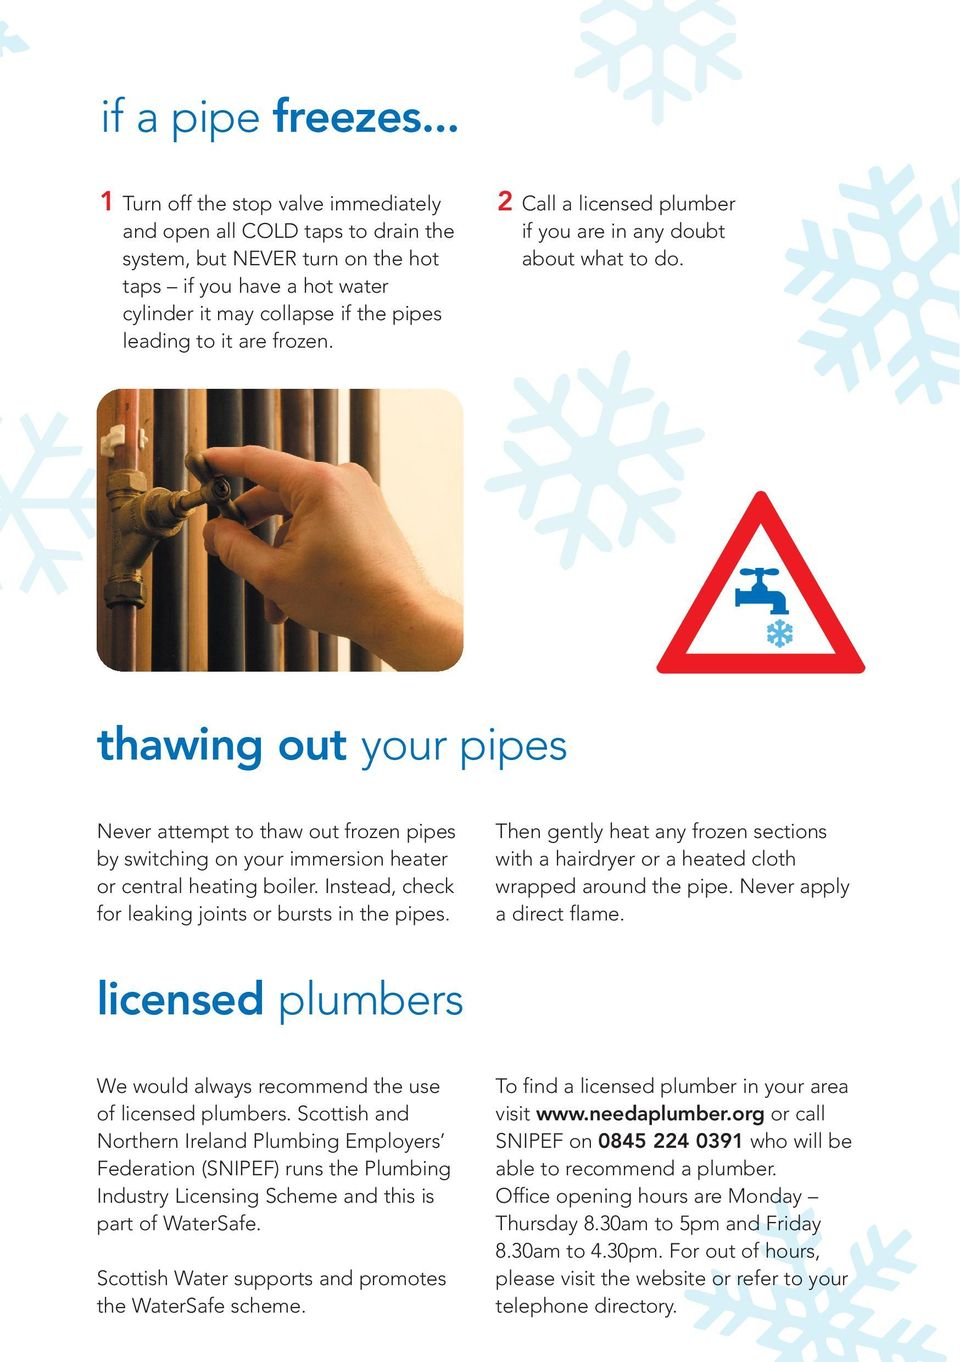 frozen. Call a licensed plumber if you are in any doubt about what to do. thawing out your pipes Never attempt to thaw out frozen pipes by switching on your immersion heater or central heating boiler.